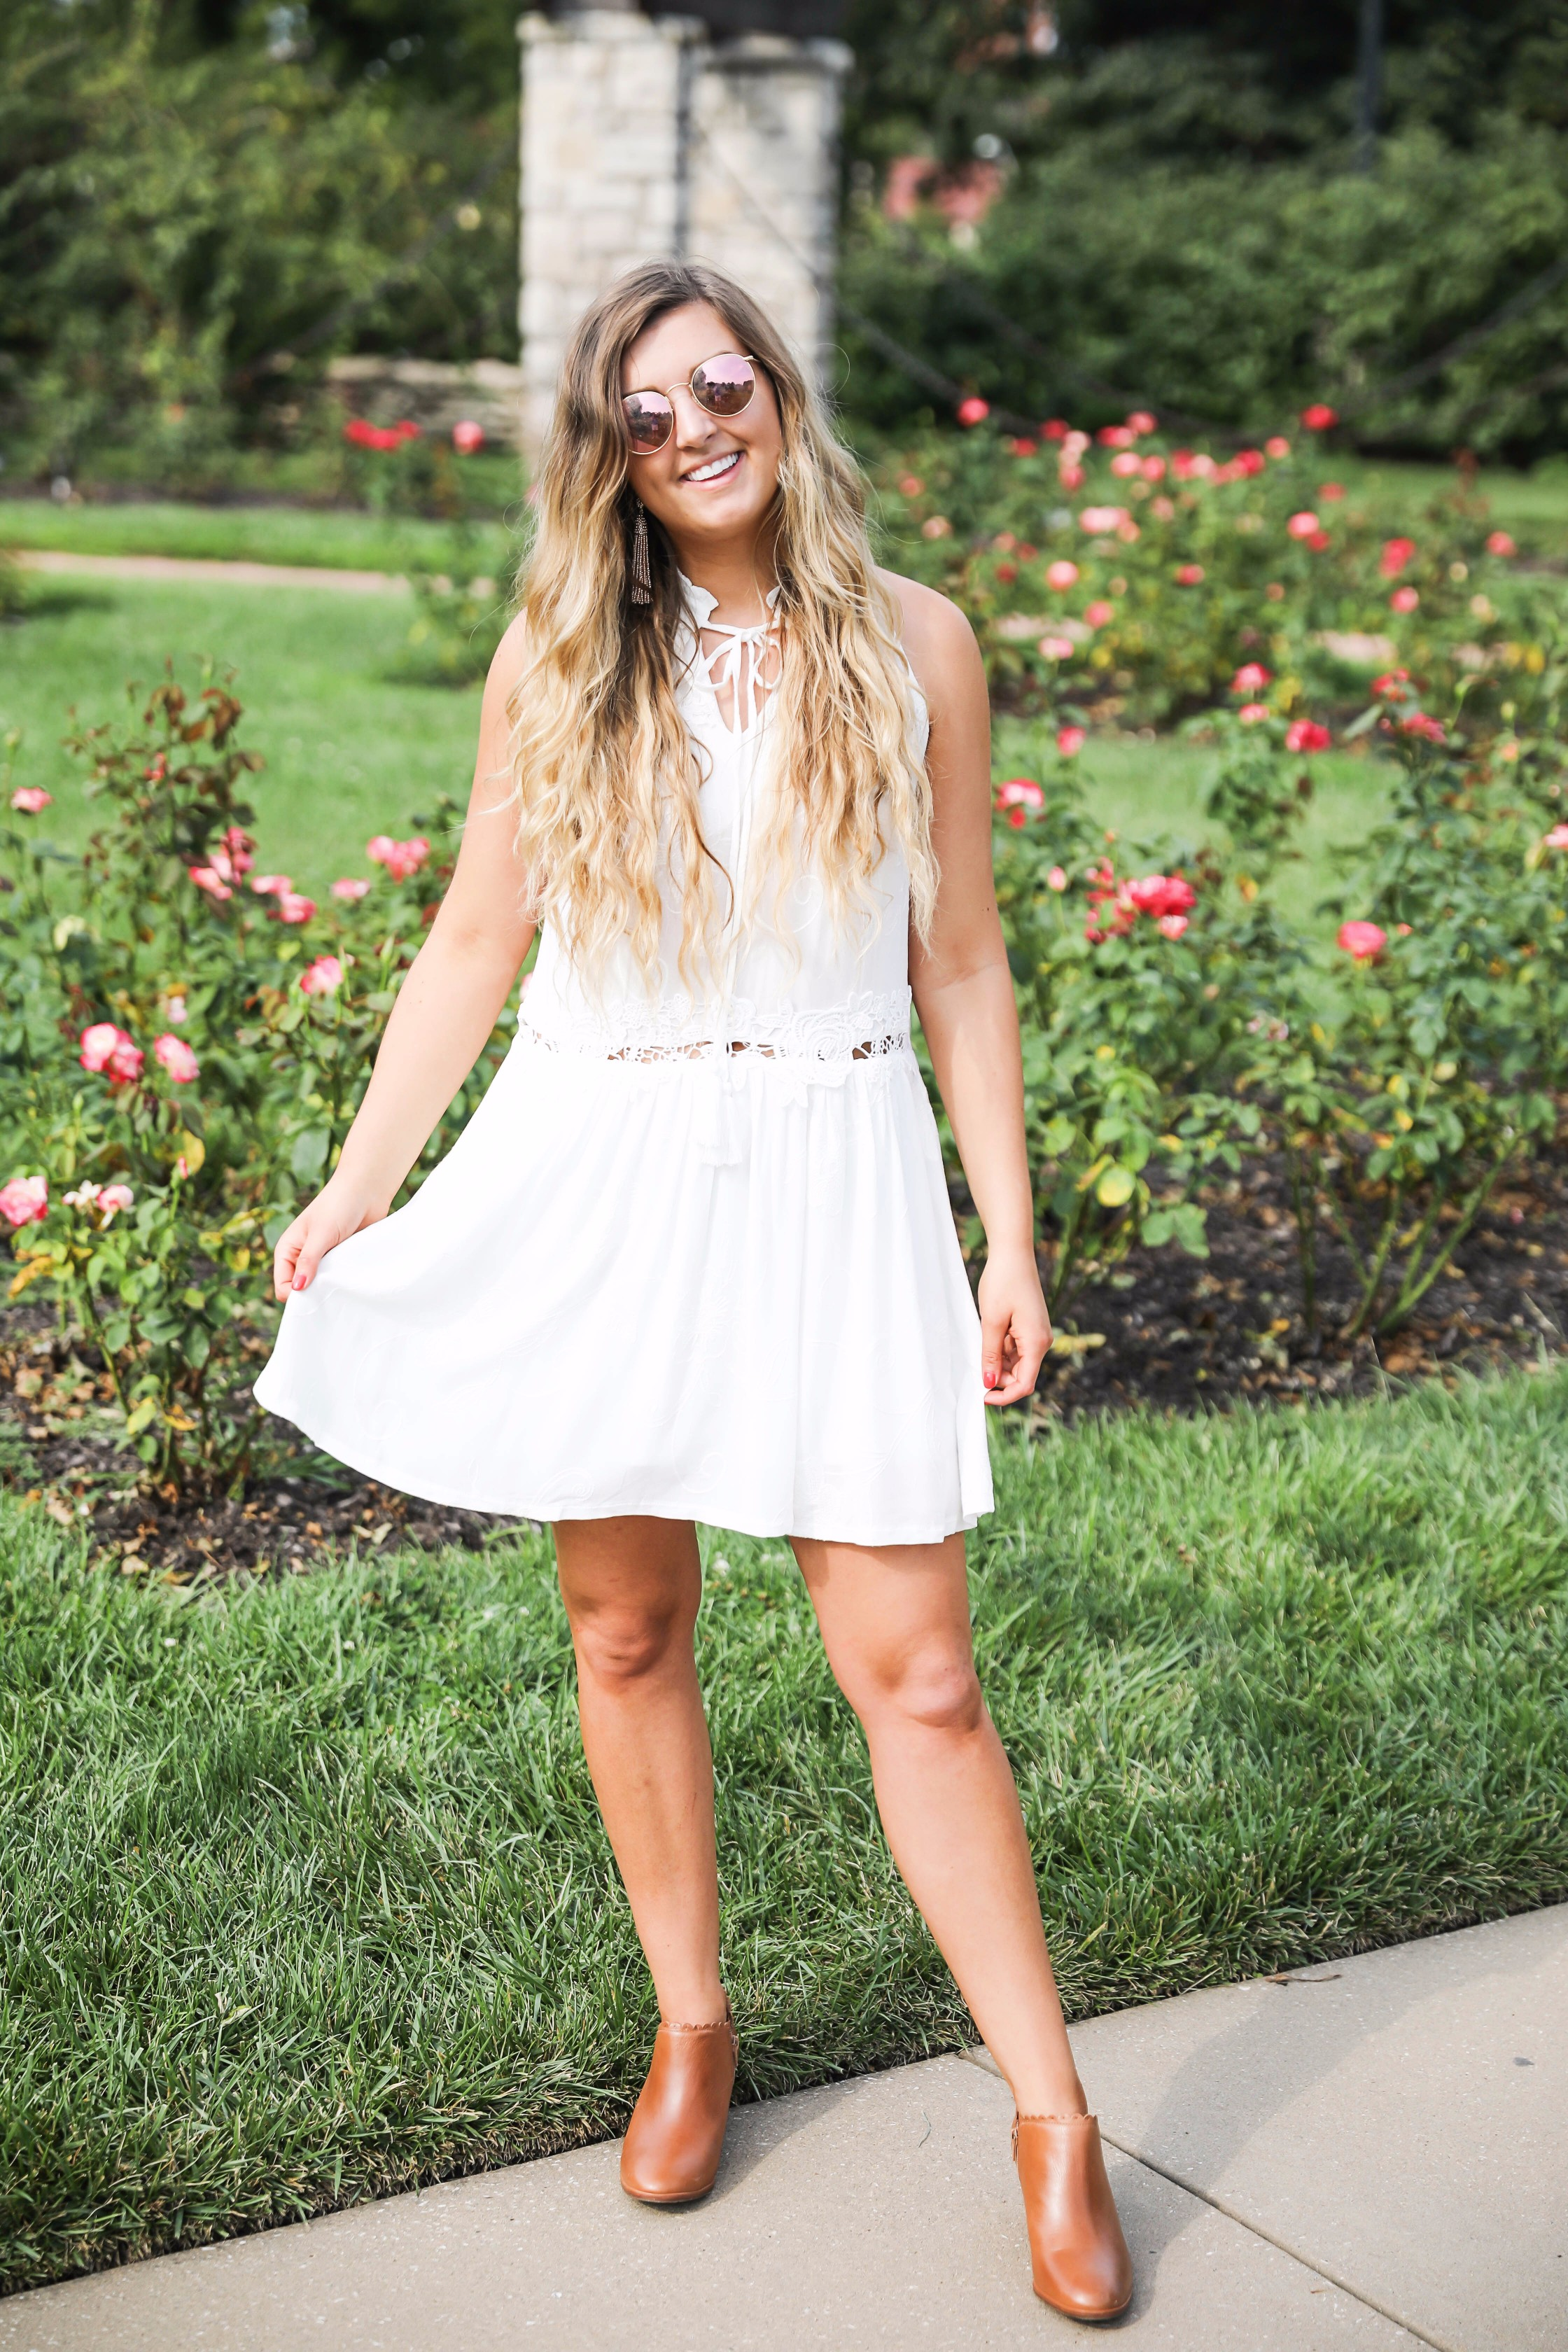 Flowy white dress surrounded by flowers! I love this dress, it's so fun and flowy and it looks so good with booties to transition into fall! Find details on fashion blogger daily dose of charm by lauren lindmark